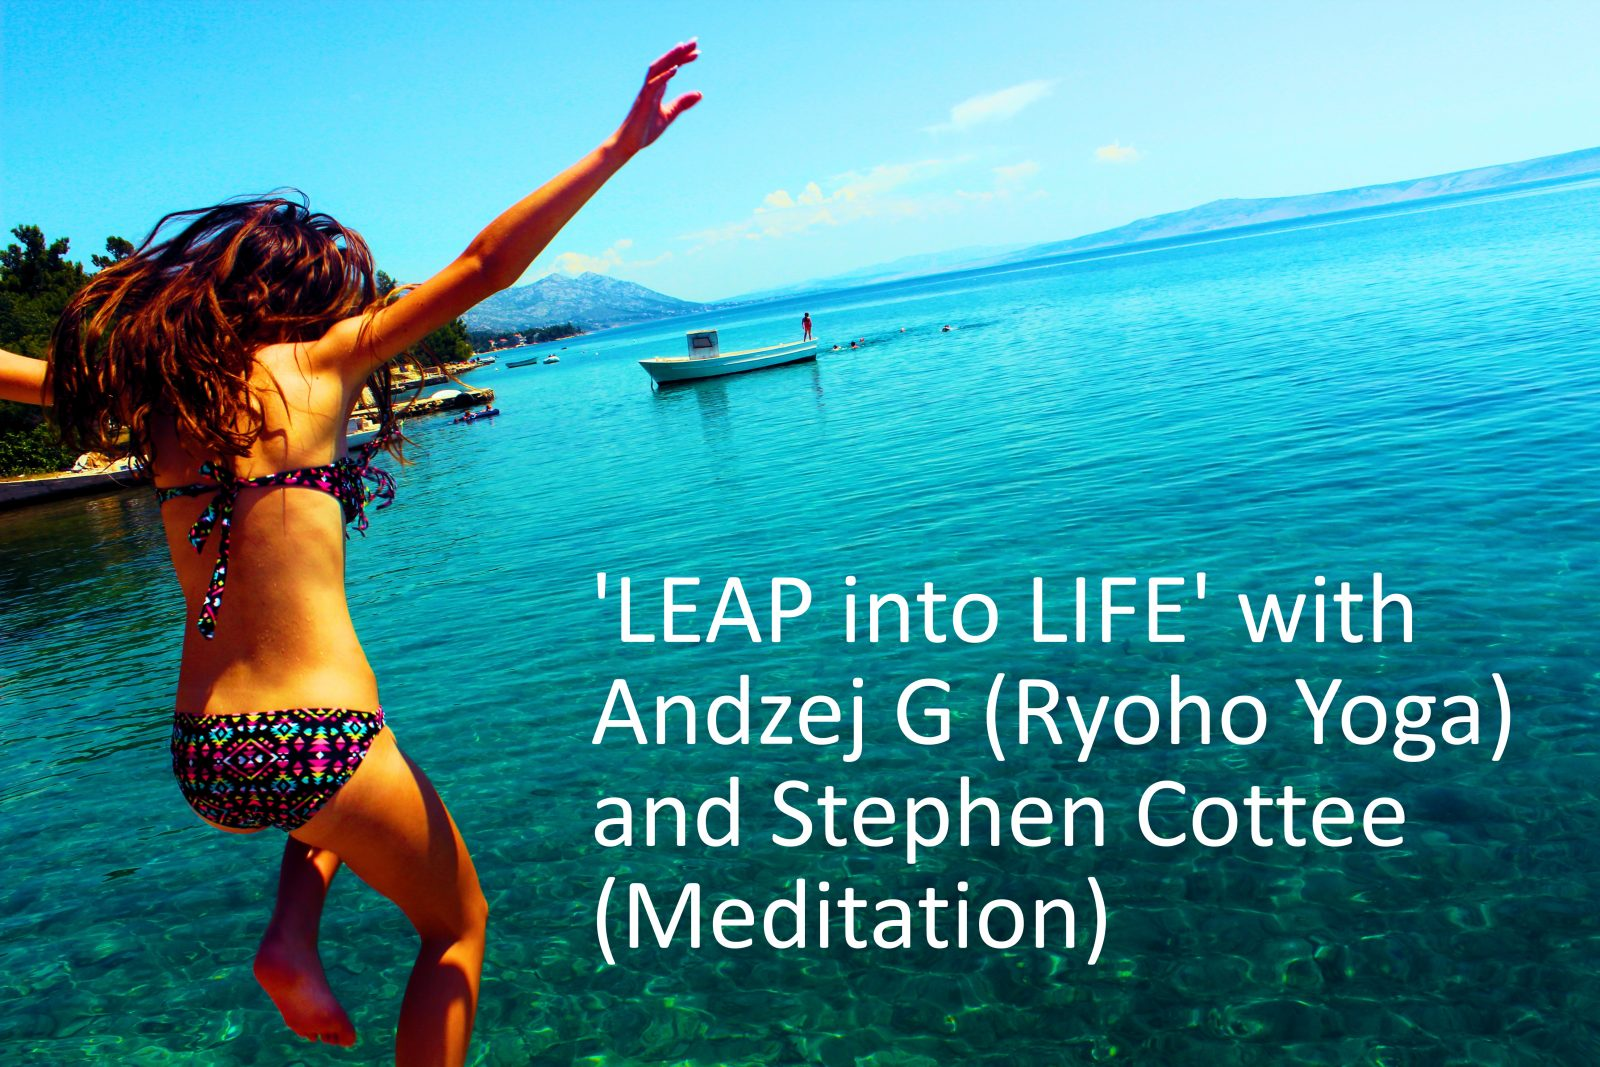 'LEAP into LIFE' with Andzej G (Ryoho Yoga) and Stephen Cottee (Meditation)